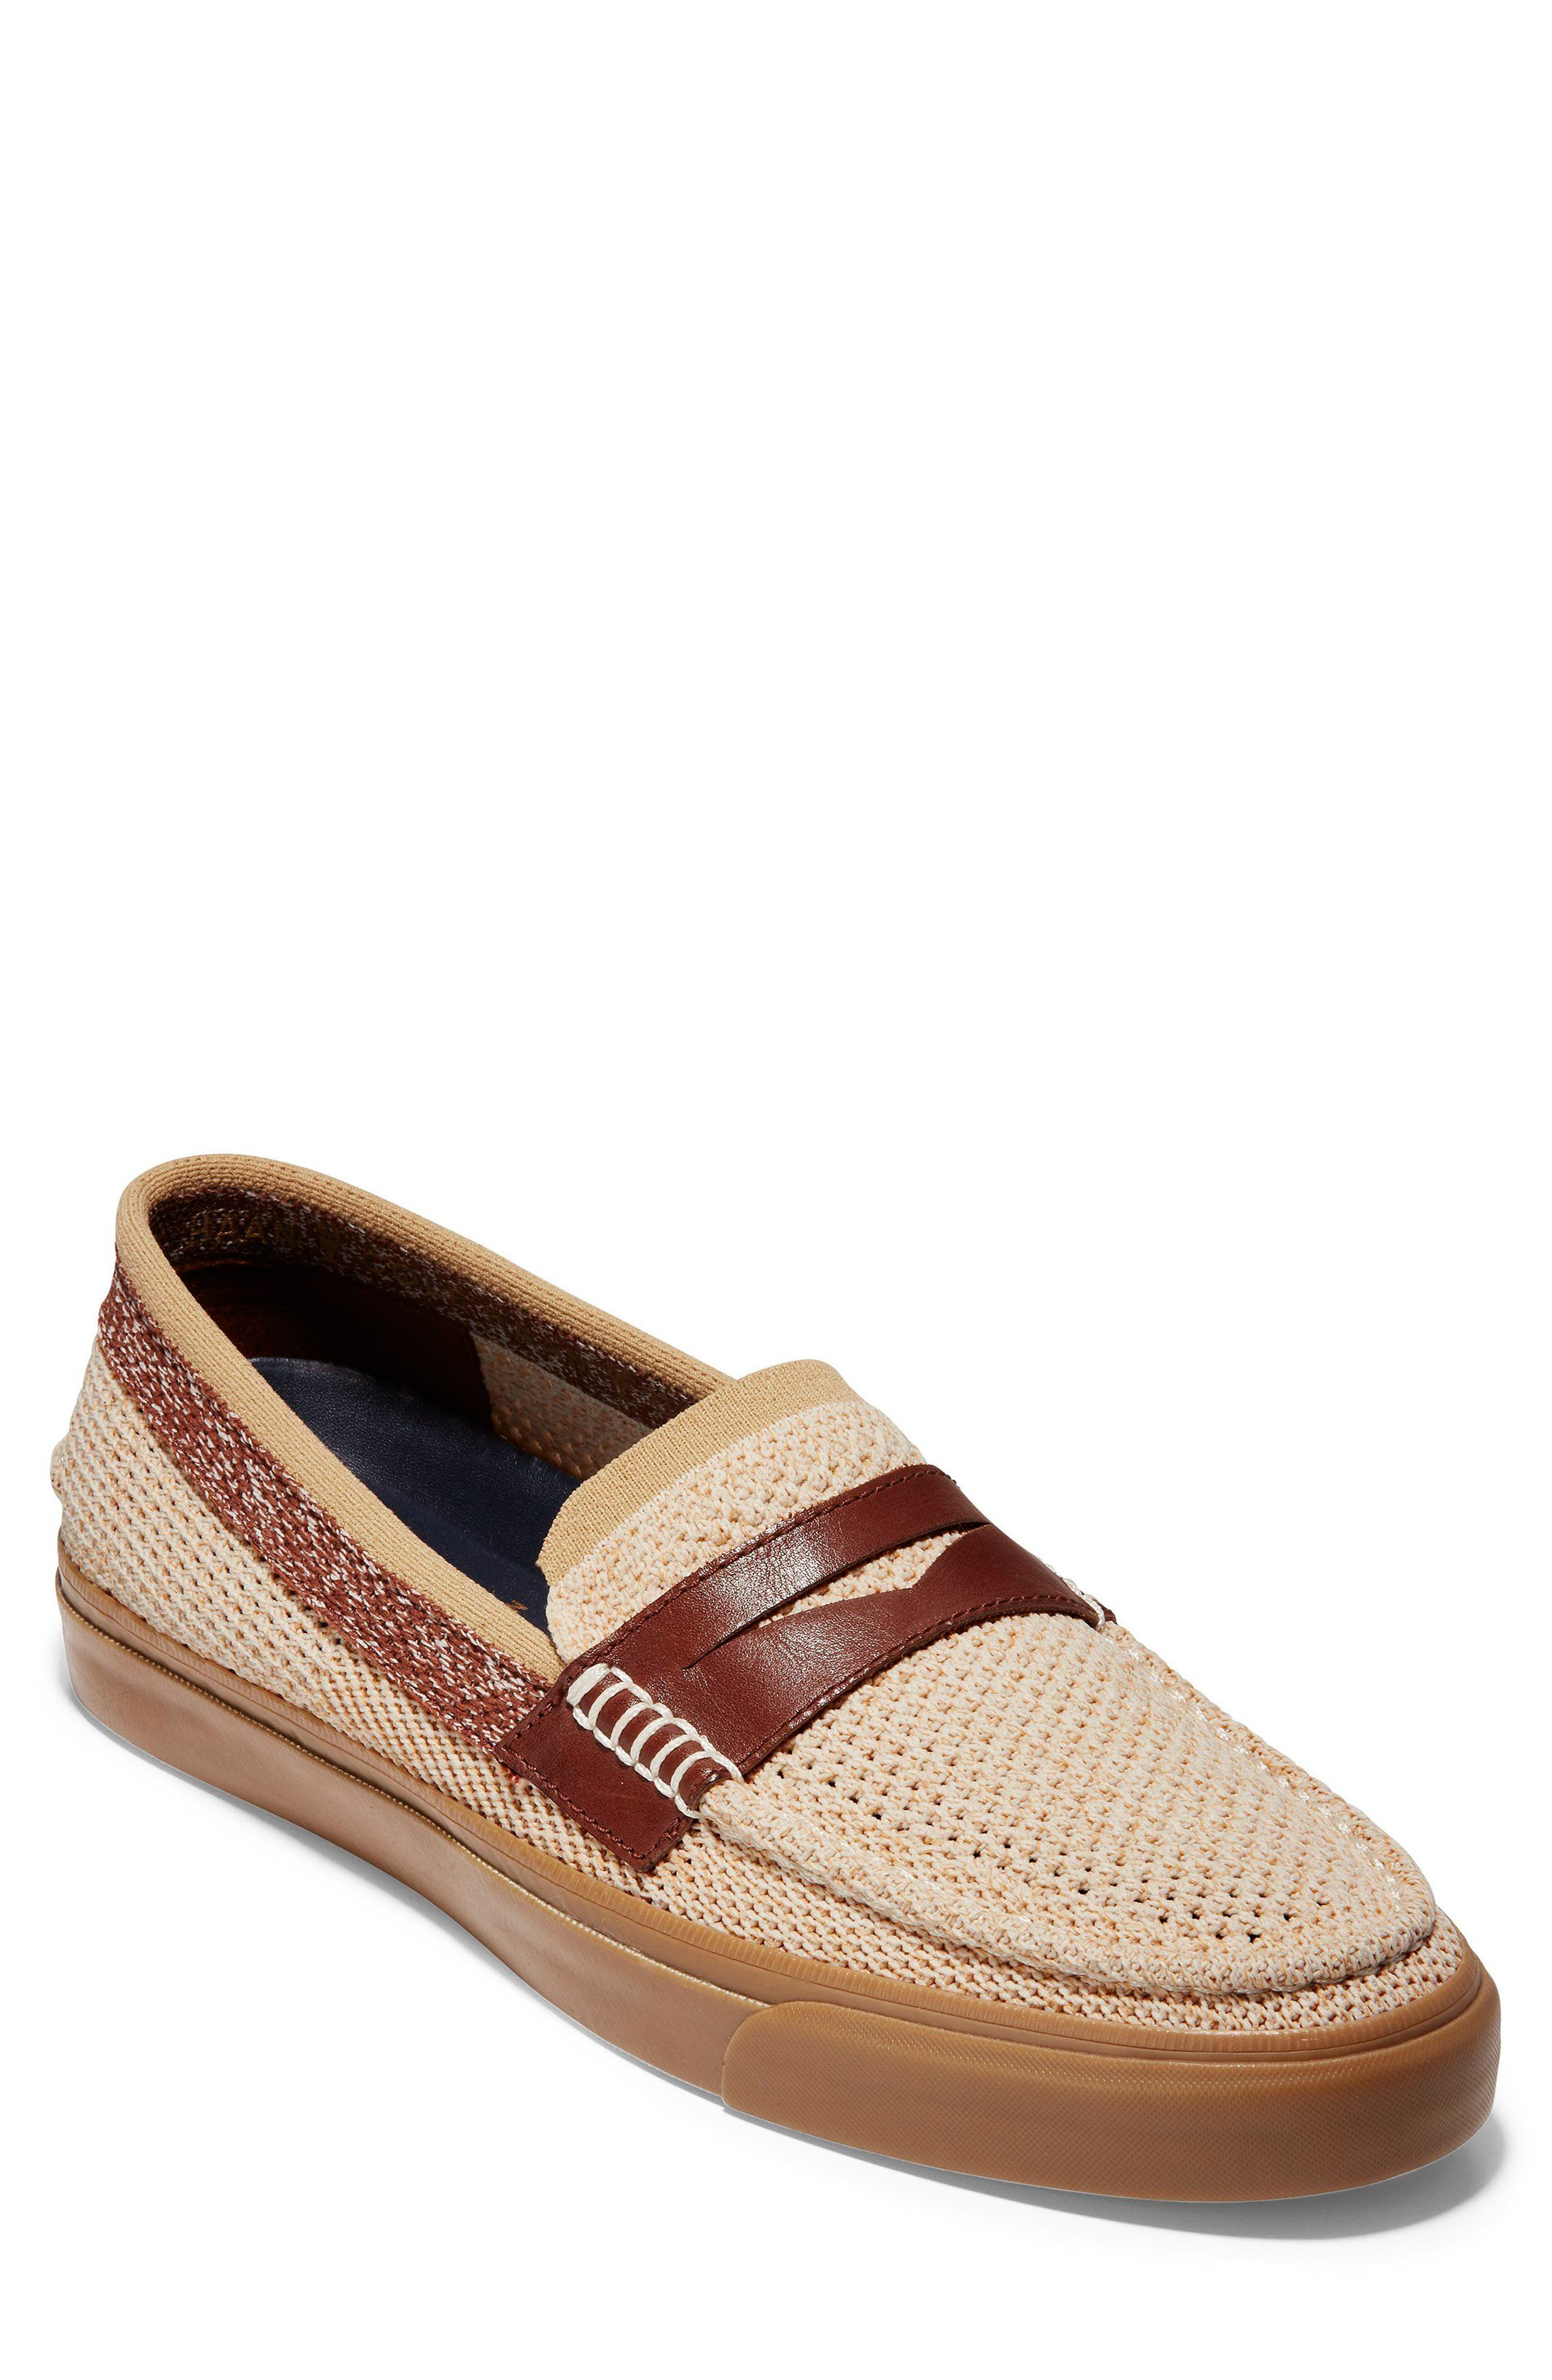 Pinch Weekend Stitch Penny Loafer,                         Main,                         color, Iced Coffee/ Sand/ Woodbury